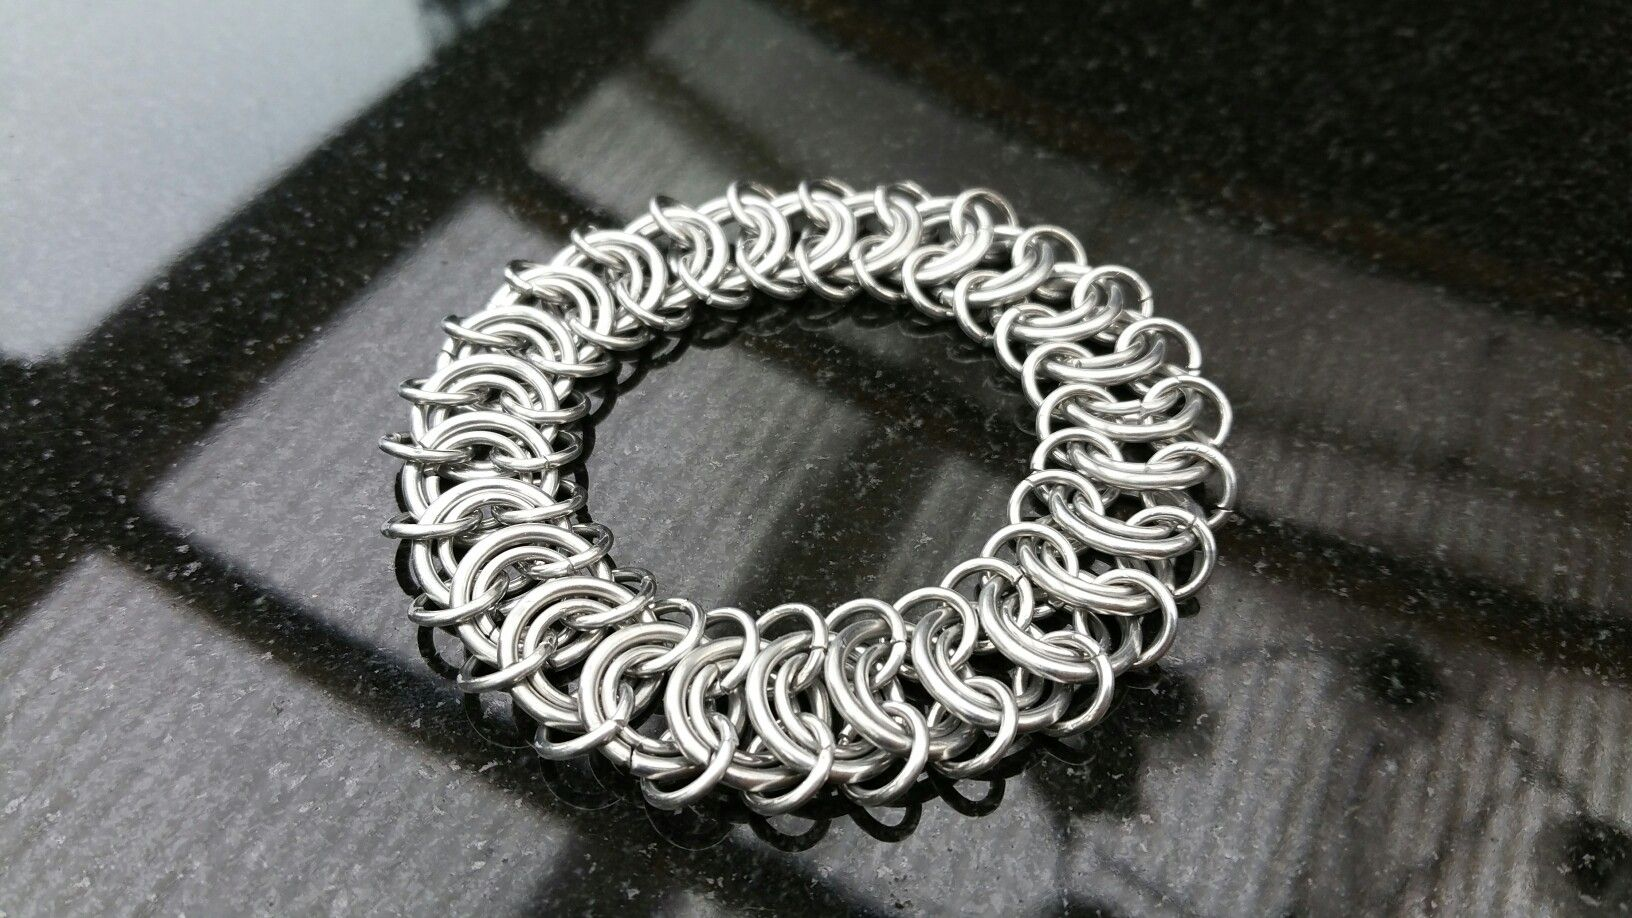 European 4 in 1 bracelet with double inner rings. My selfmade chainmail is also on facebook @ Ivy's Scale Mail